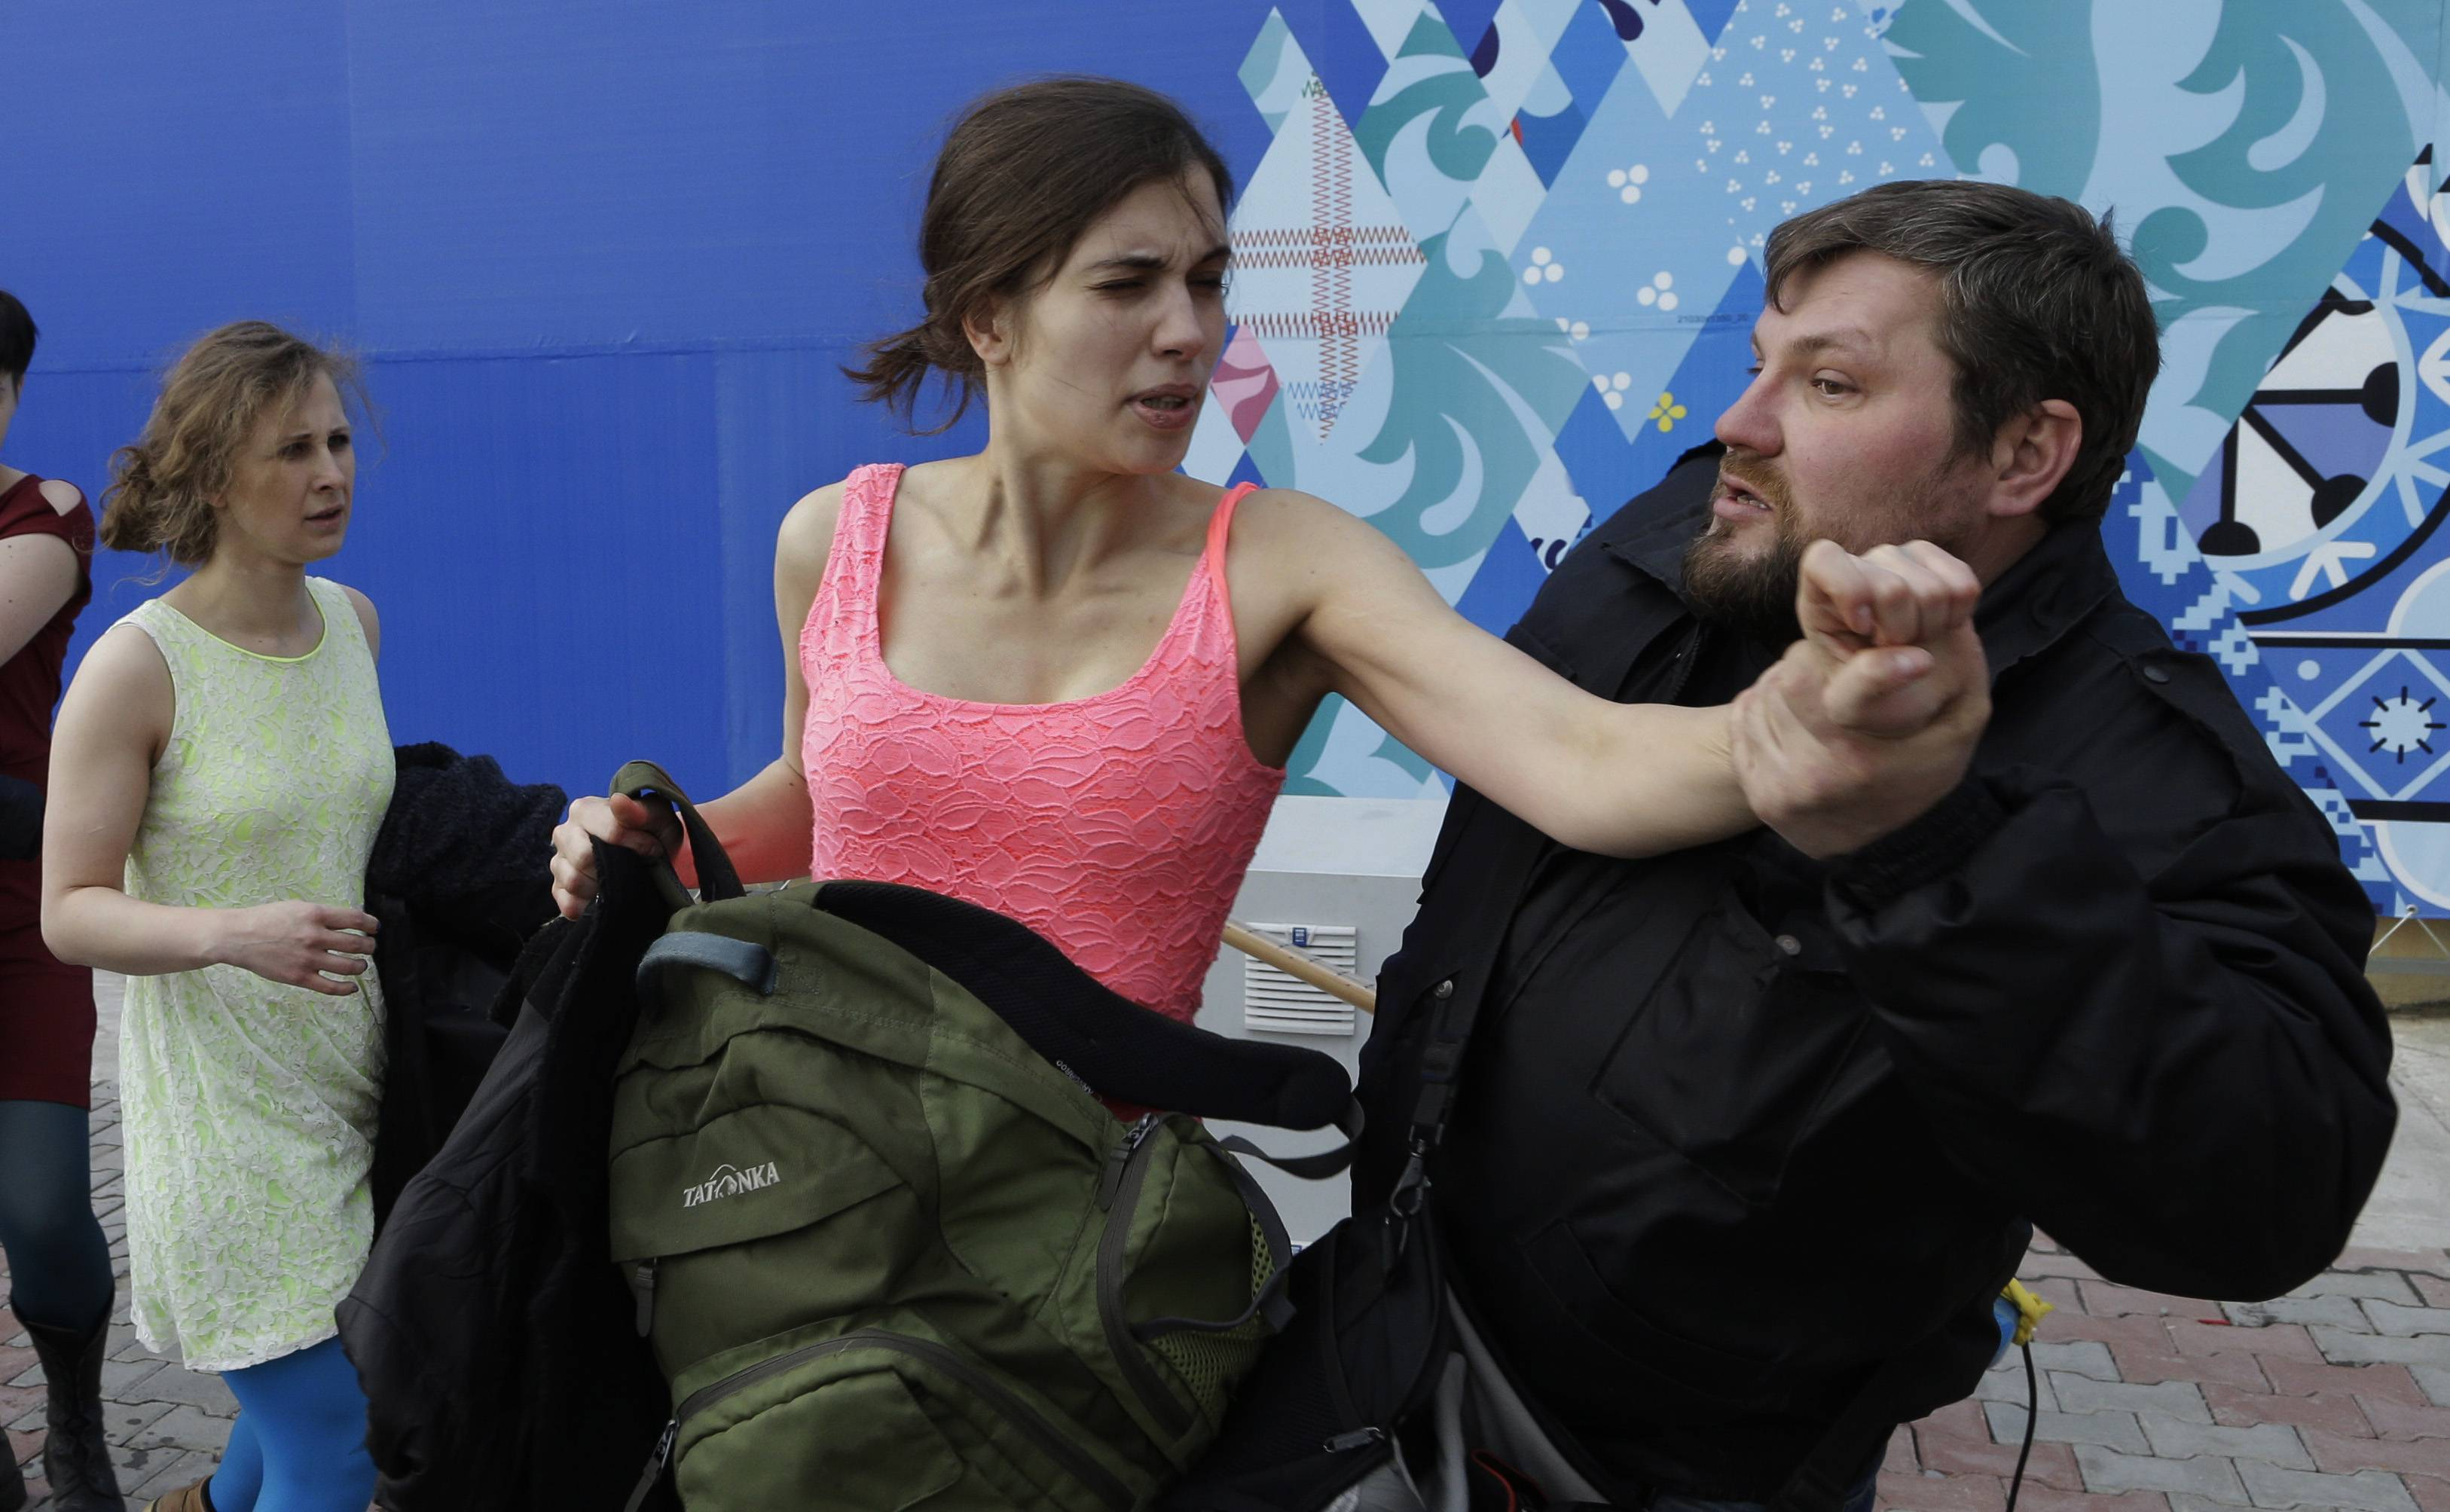 A Russian security officer attacks Nadezhda Tolokonnikova and a photographer as she and fellow members of the punk group Pussy Riot, including Maria Alekhina, left, stage a protest performance in Sochi, Russia, Wednesday.